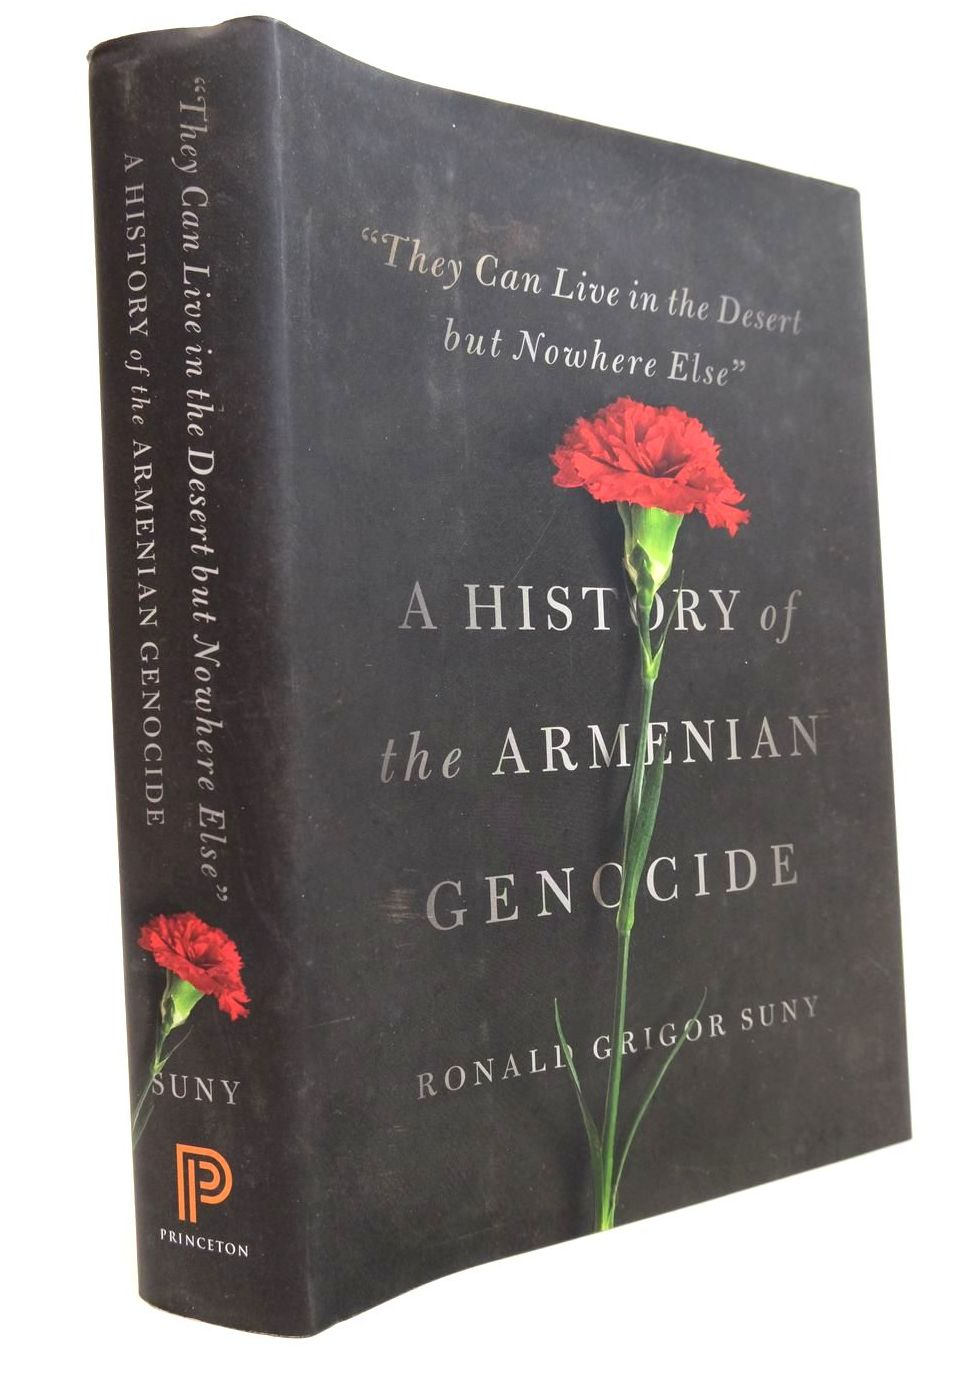 """Photo of """"THEY CAN LIVE IN THE DESERT BUT NOWHERE ELSE"""" A HISTORY OF THE ARMENIAN GENOCIDE written by Suny, Ronald Grigor published by Princeton University Press (STOCK CODE: 2132442)  for sale by Stella & Rose's Books"""